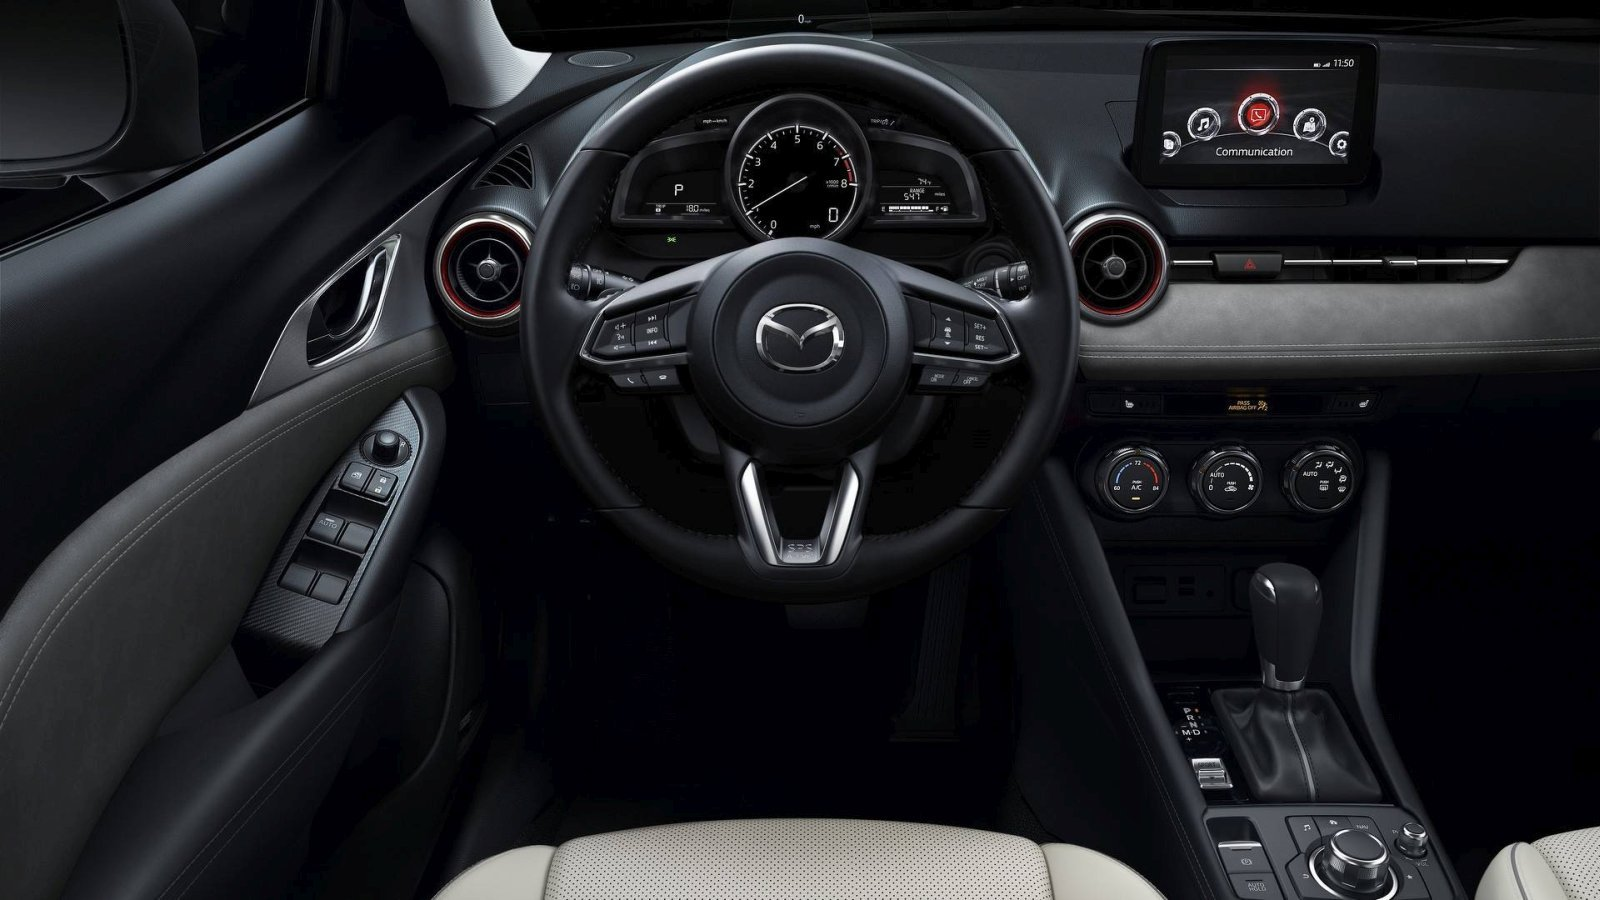 facelift f r den mazda cx 3 alle infos zu der neuheiten. Black Bedroom Furniture Sets. Home Design Ideas